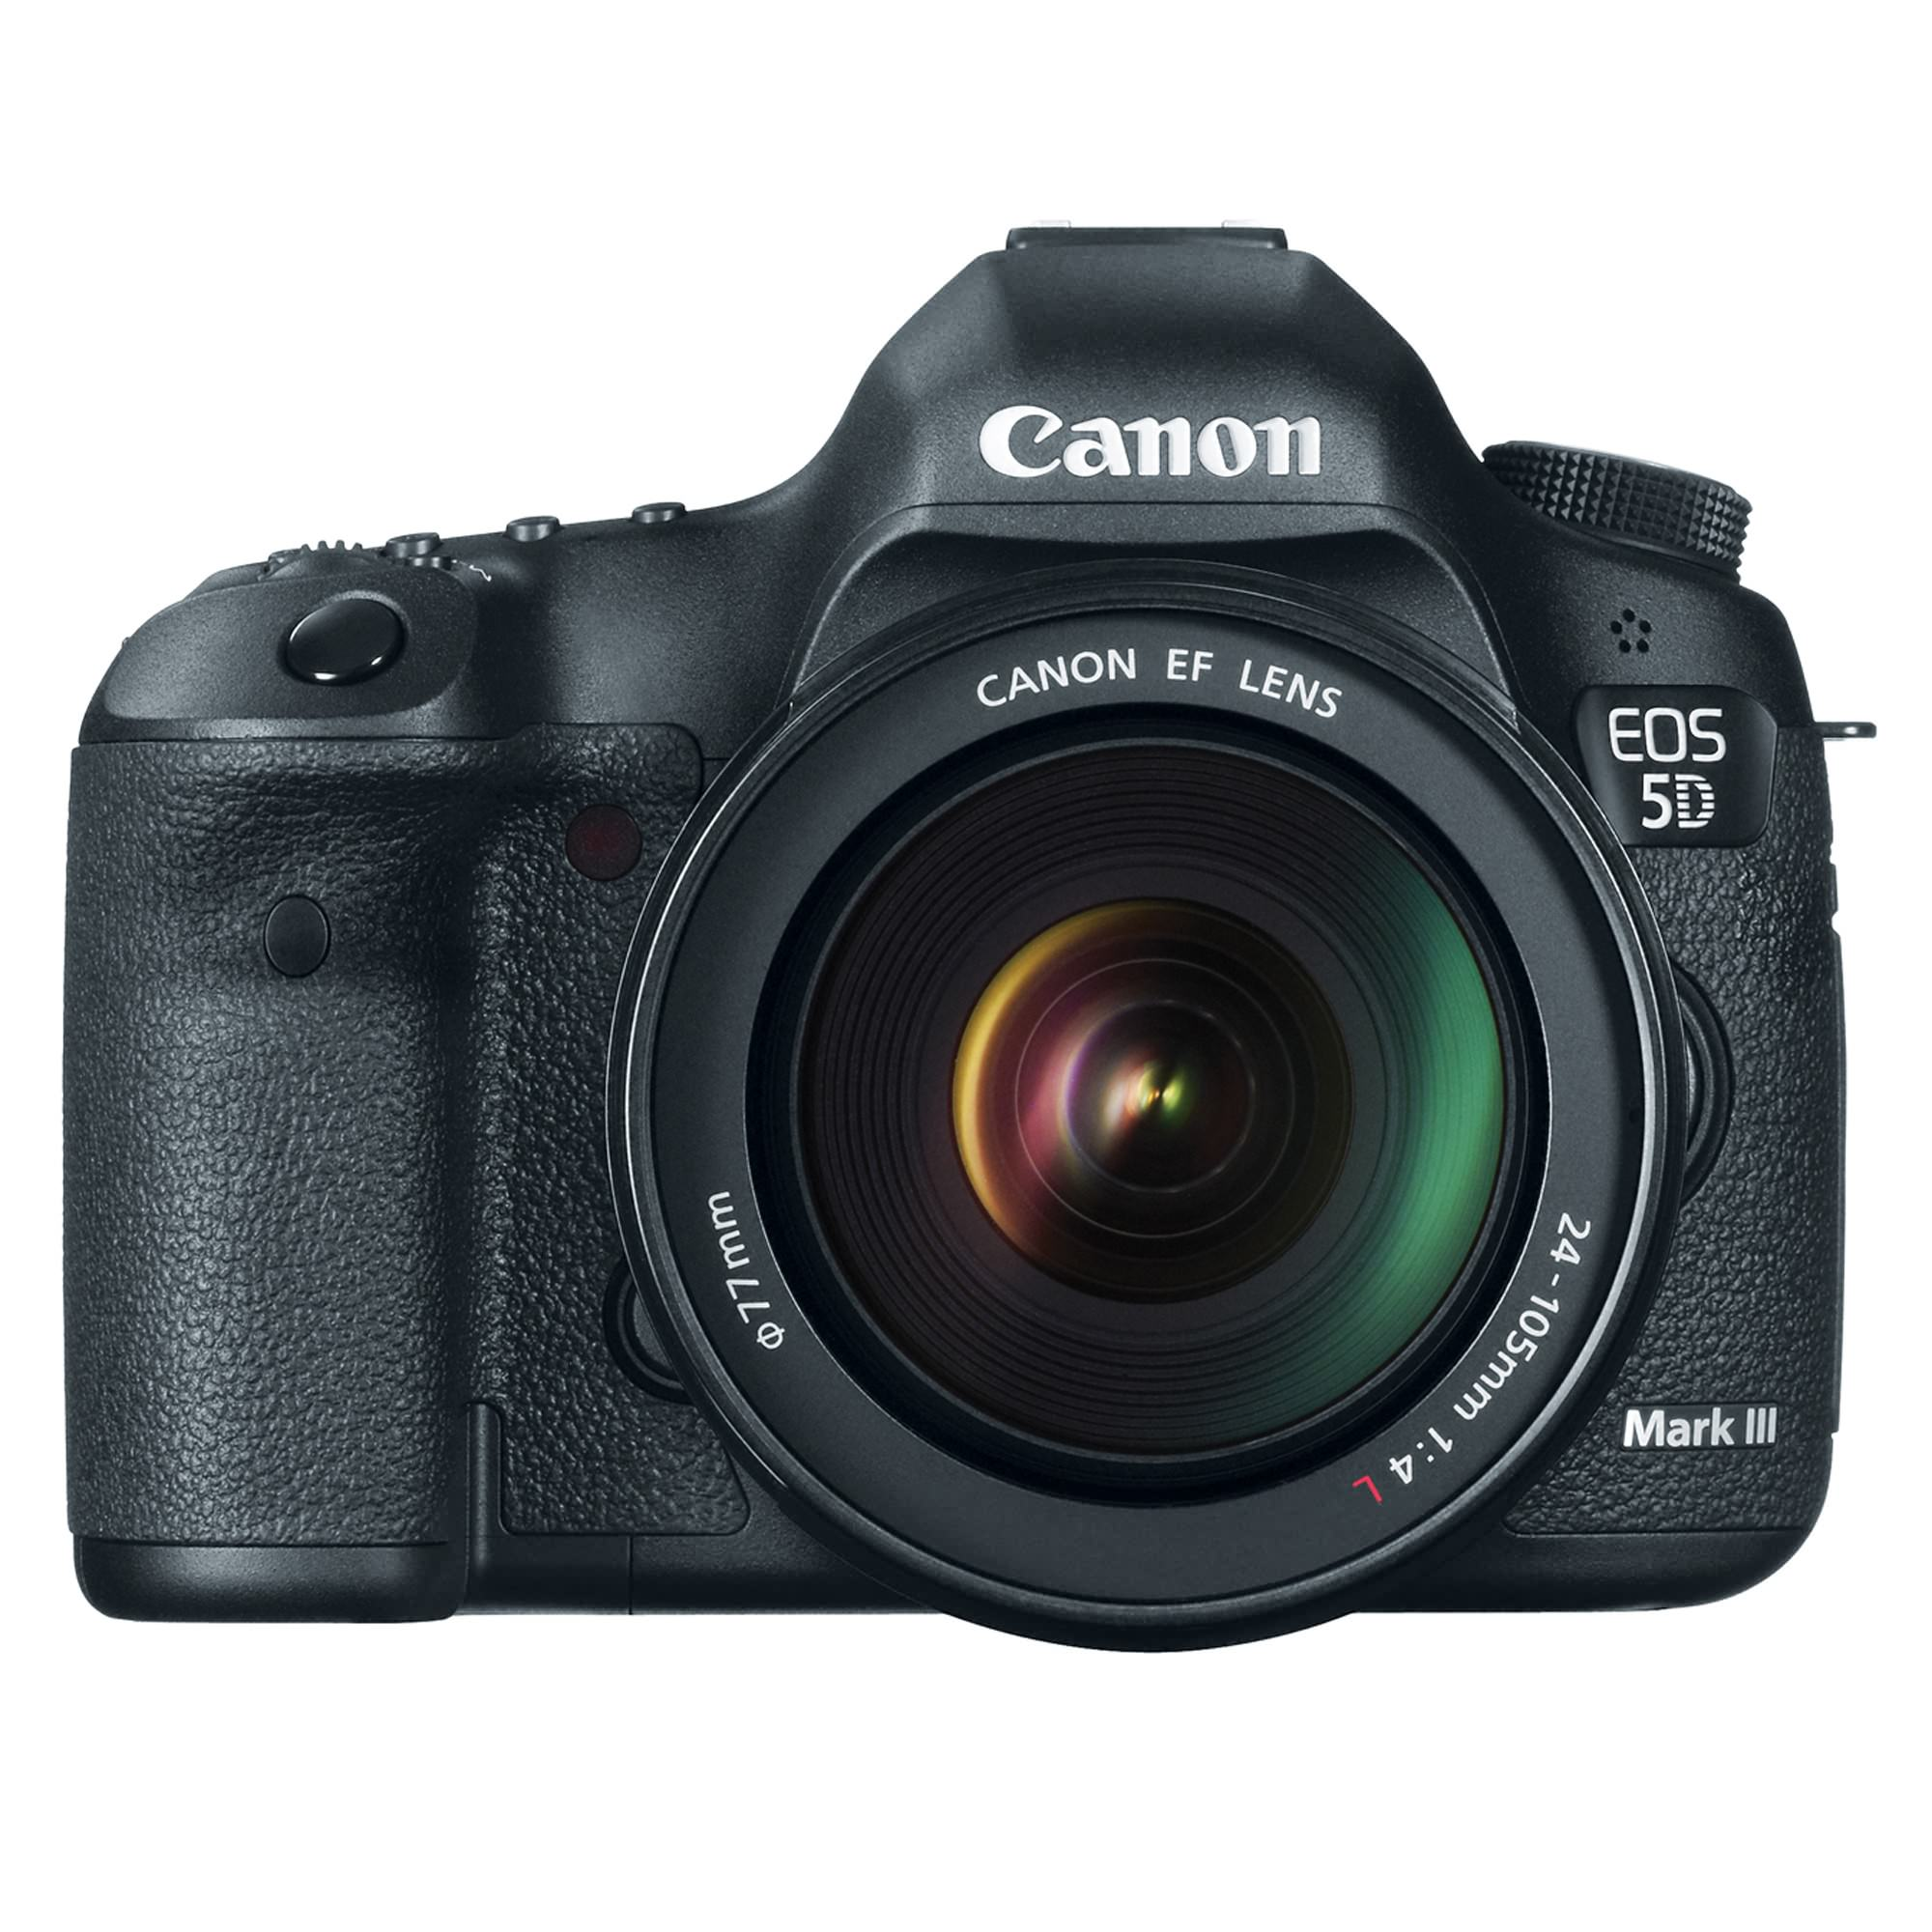 Canon EOS 5D Mark III 22.3MP Digital SLR with EF 24 105L IS USM Lens Kit L14165598 image